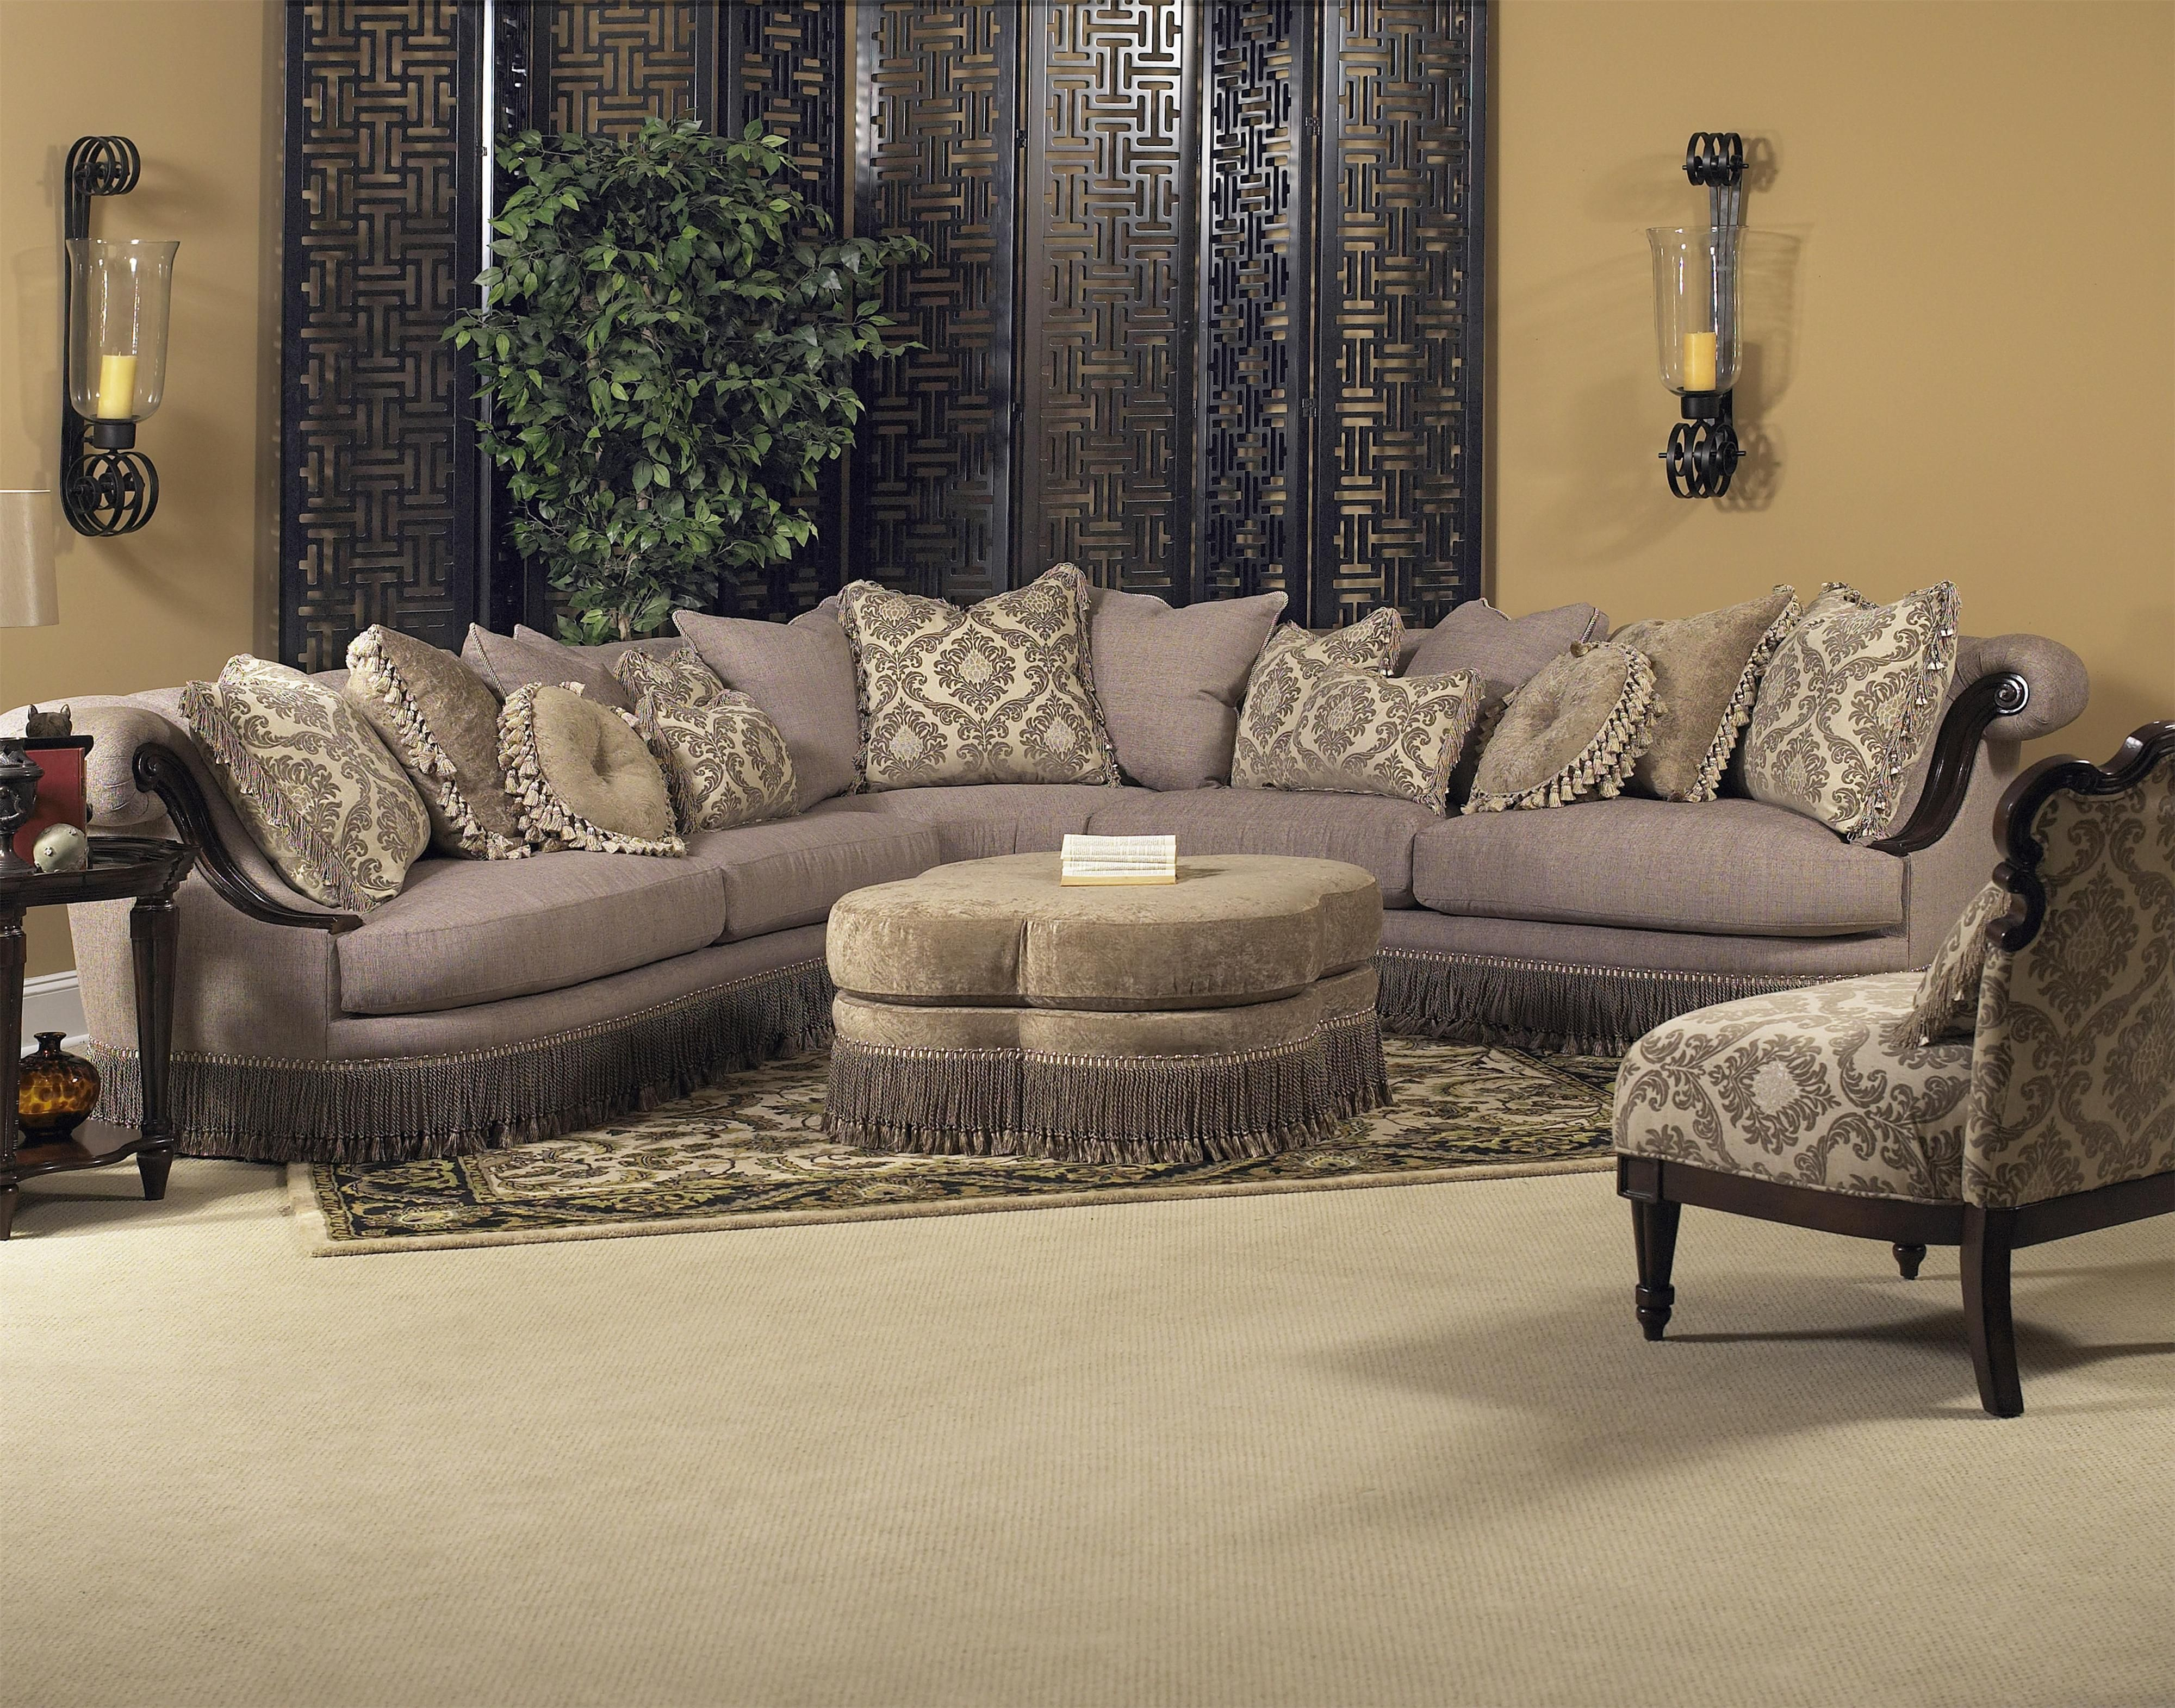 Royal Living Room Furniture. Classic Wellingsley Sectional by Fairmont Designs available at Royal  Furniture